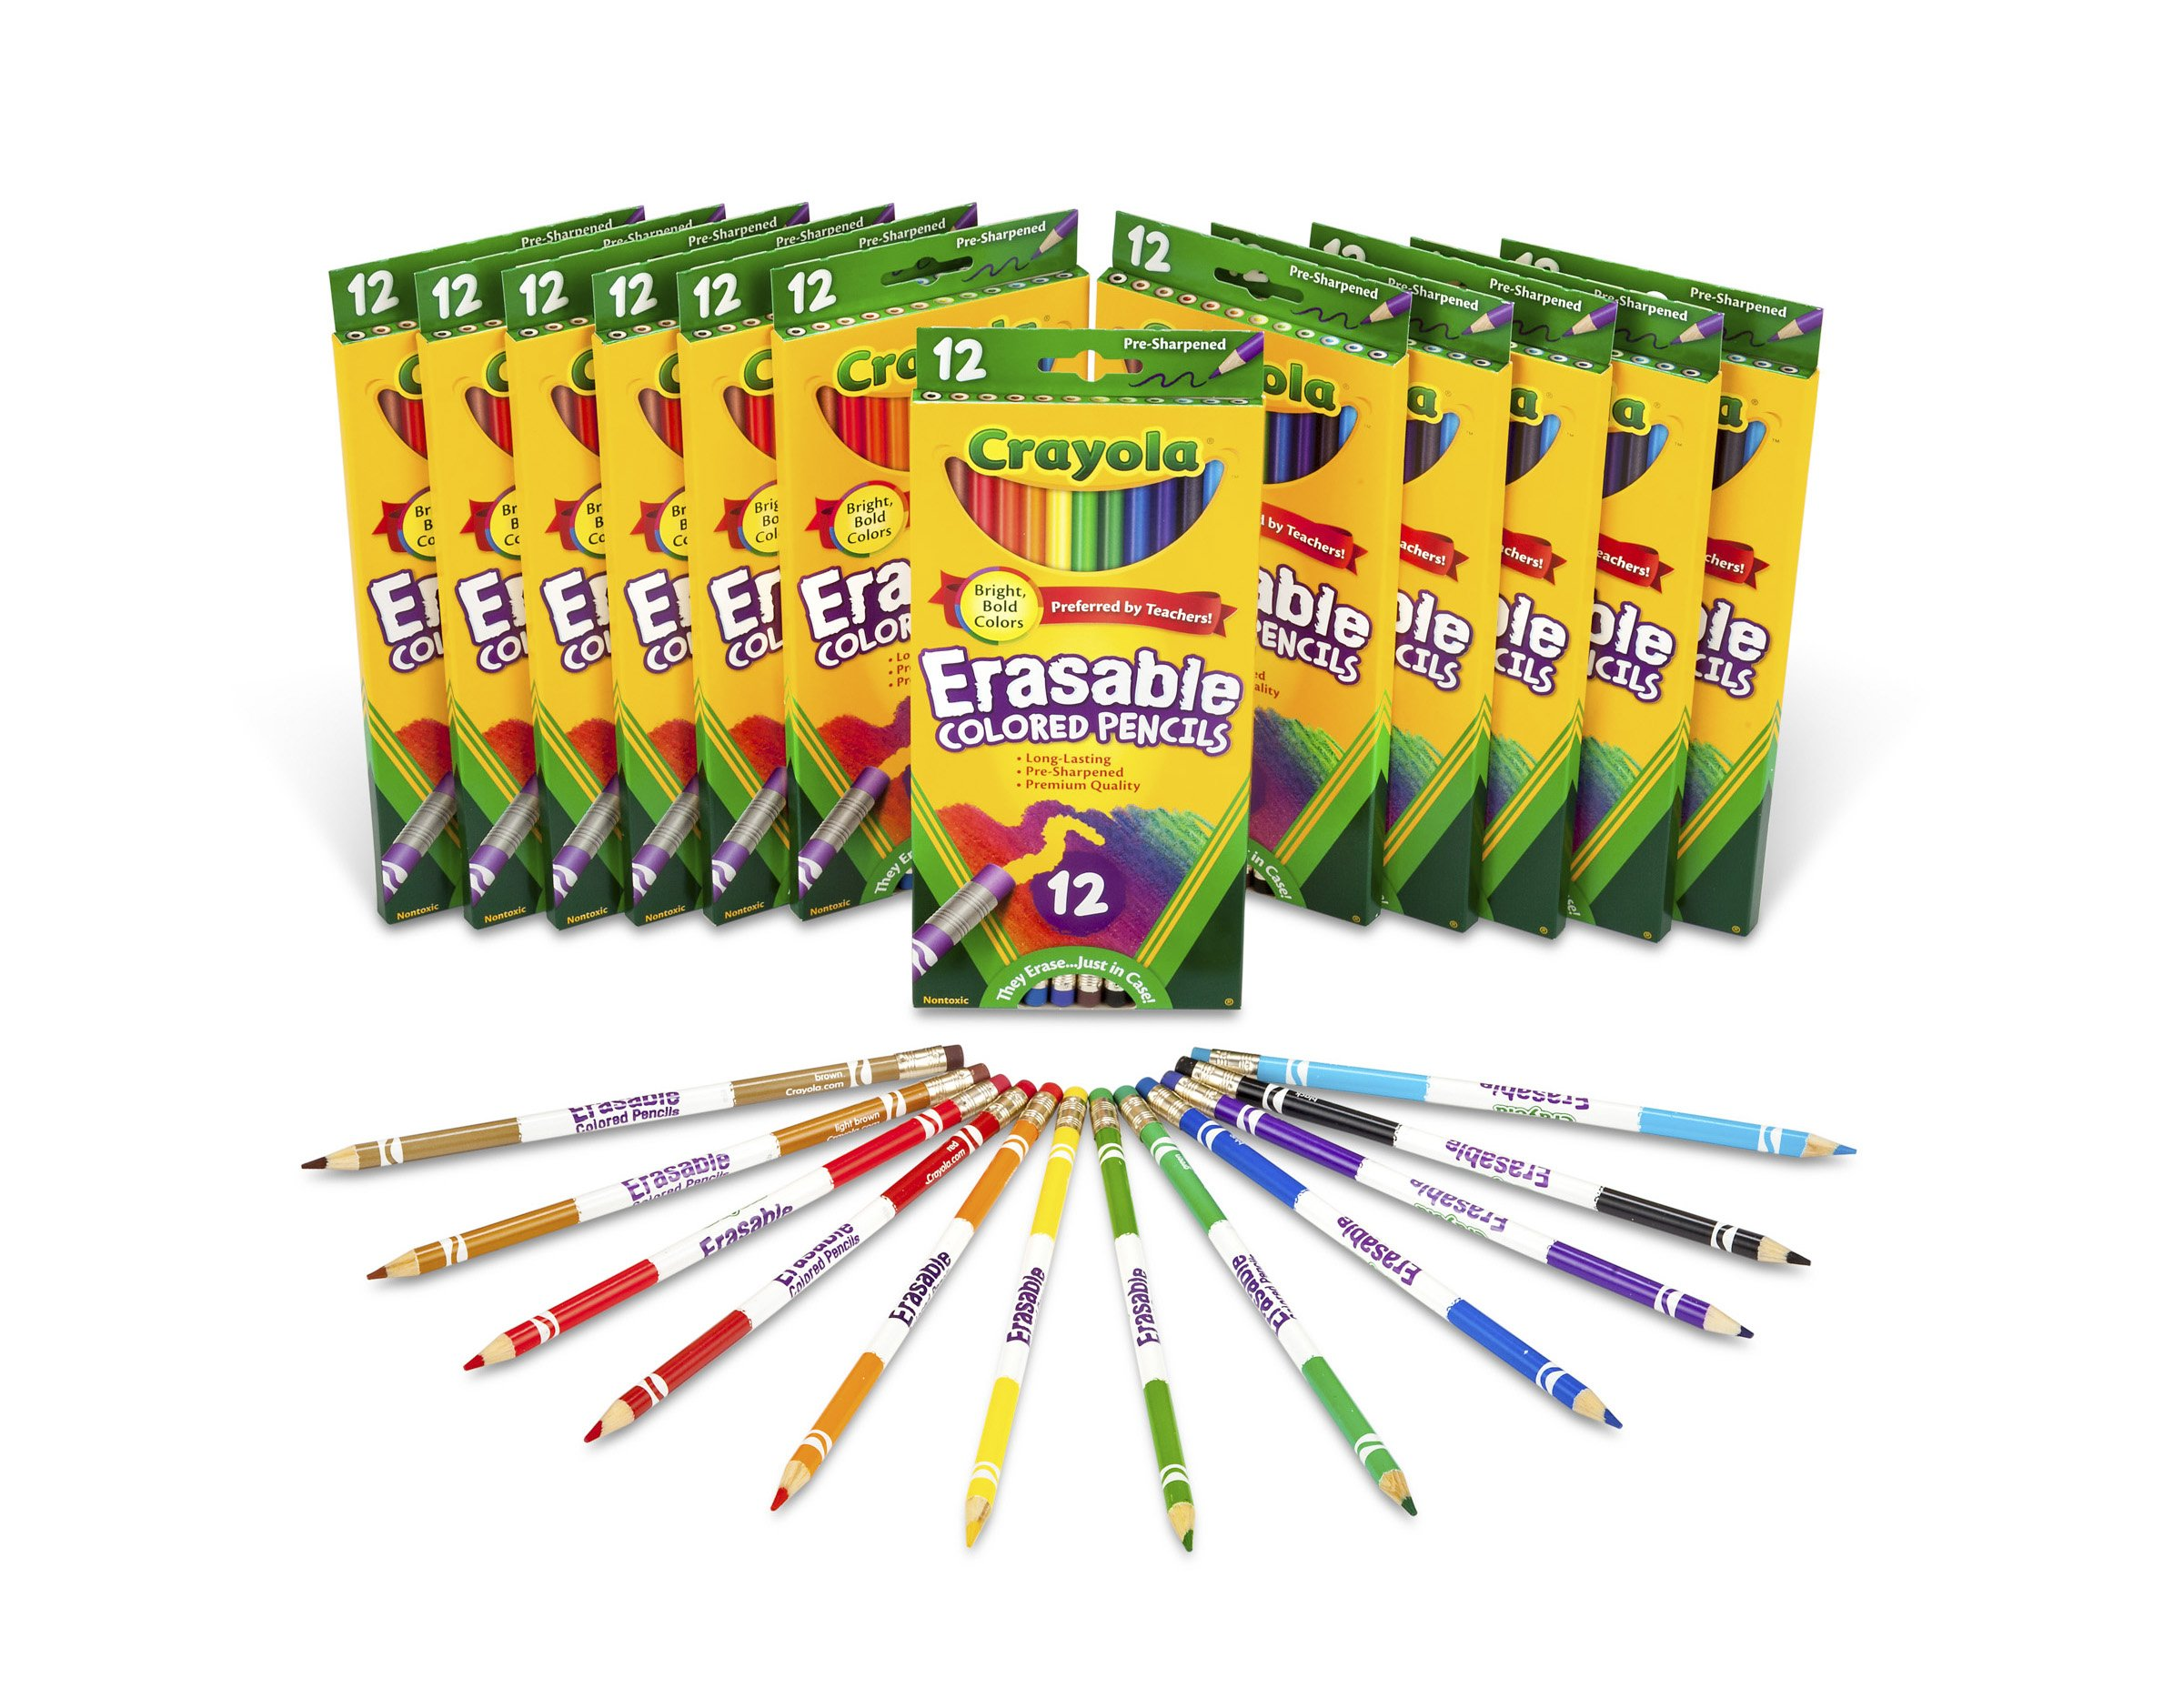 Crayola Erasable Colored Pencils, School Supplies, 12 Pack of 12Count by Crayola